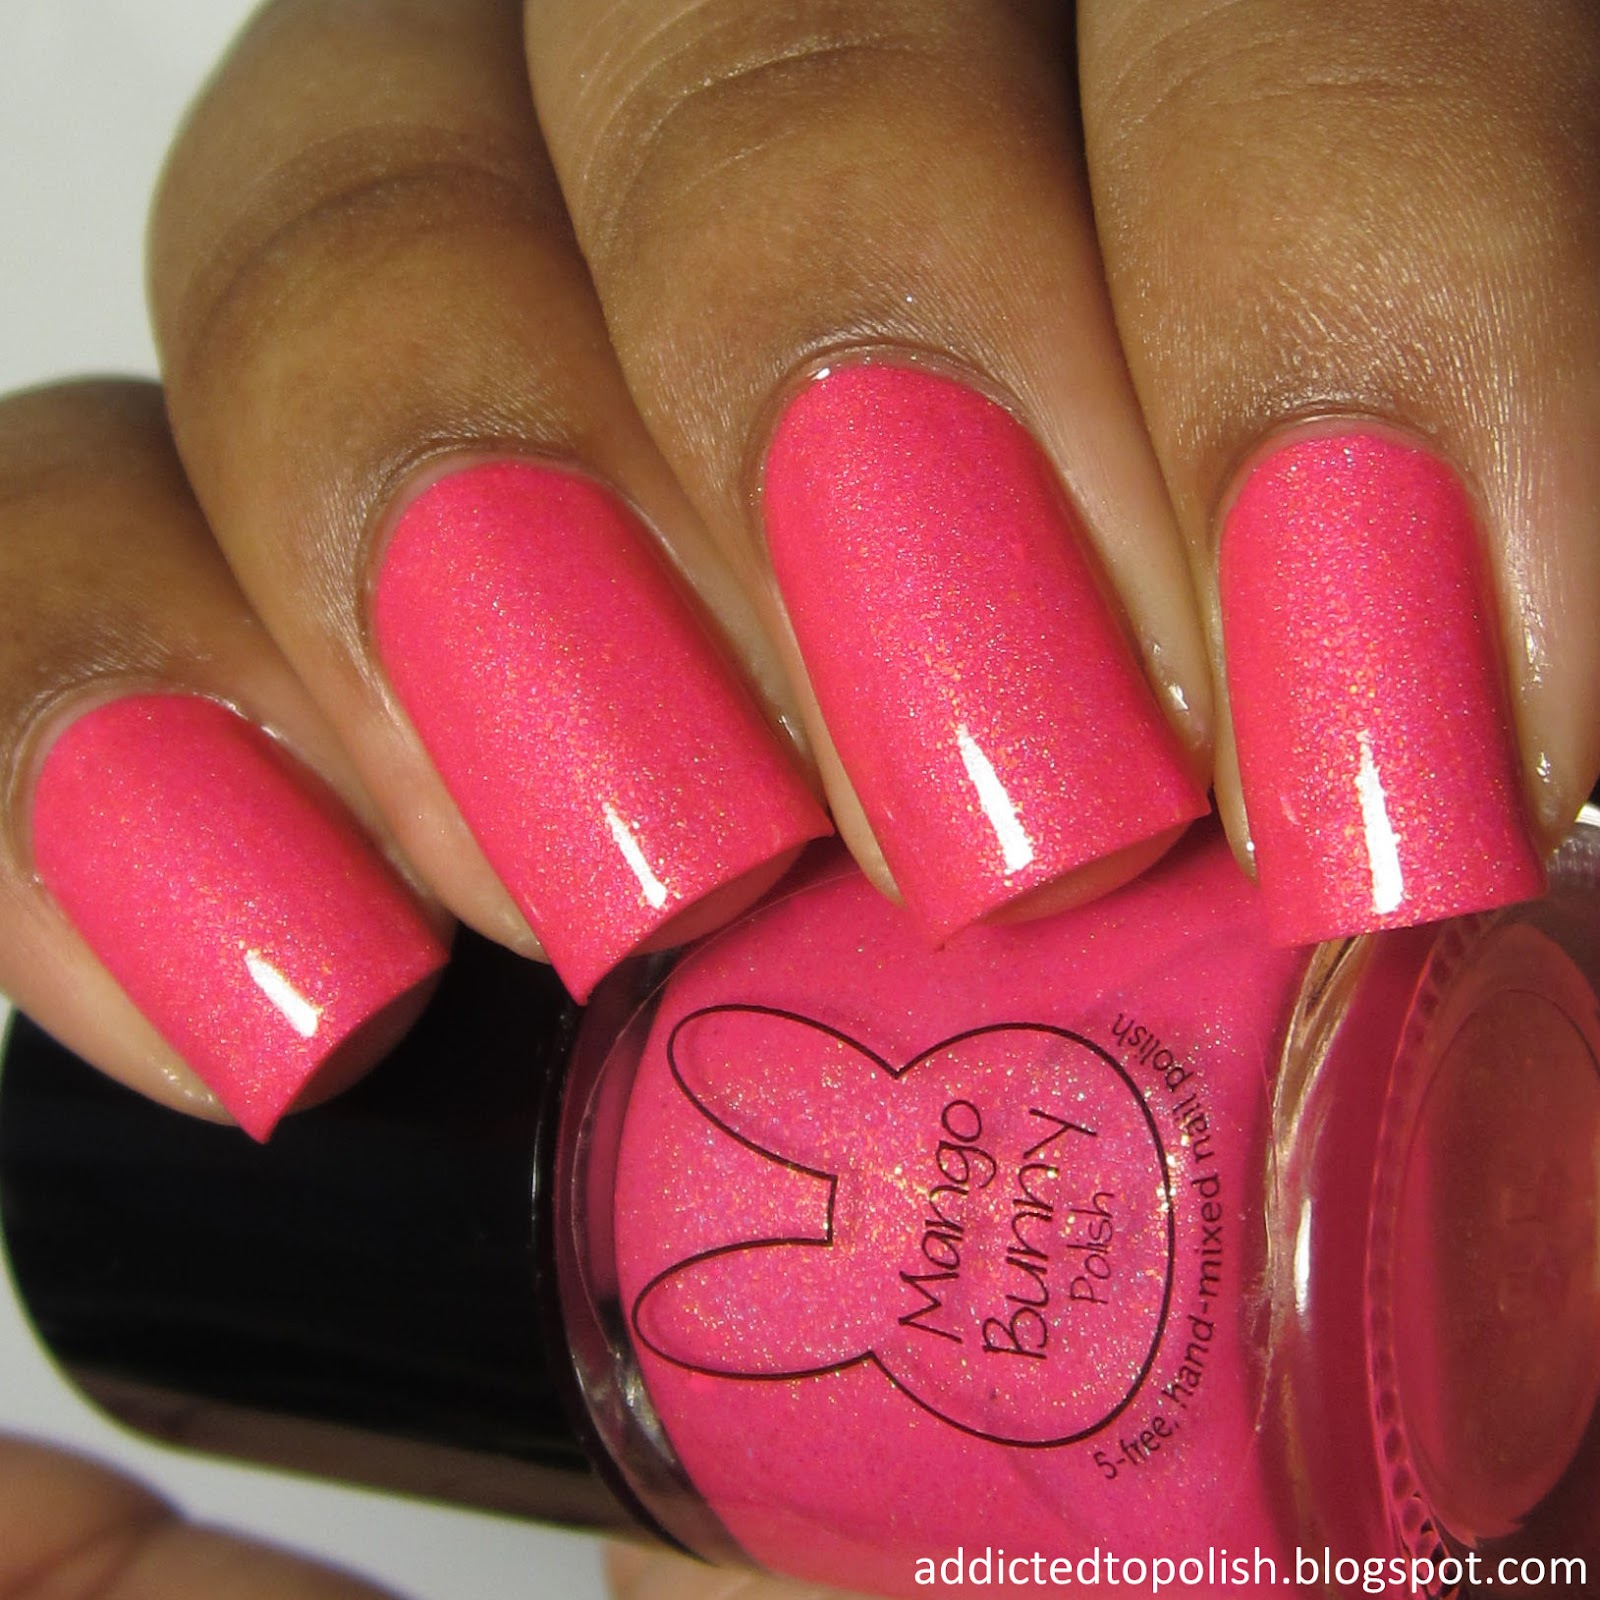 mango bunny polish pinking about summer sunkissed neons